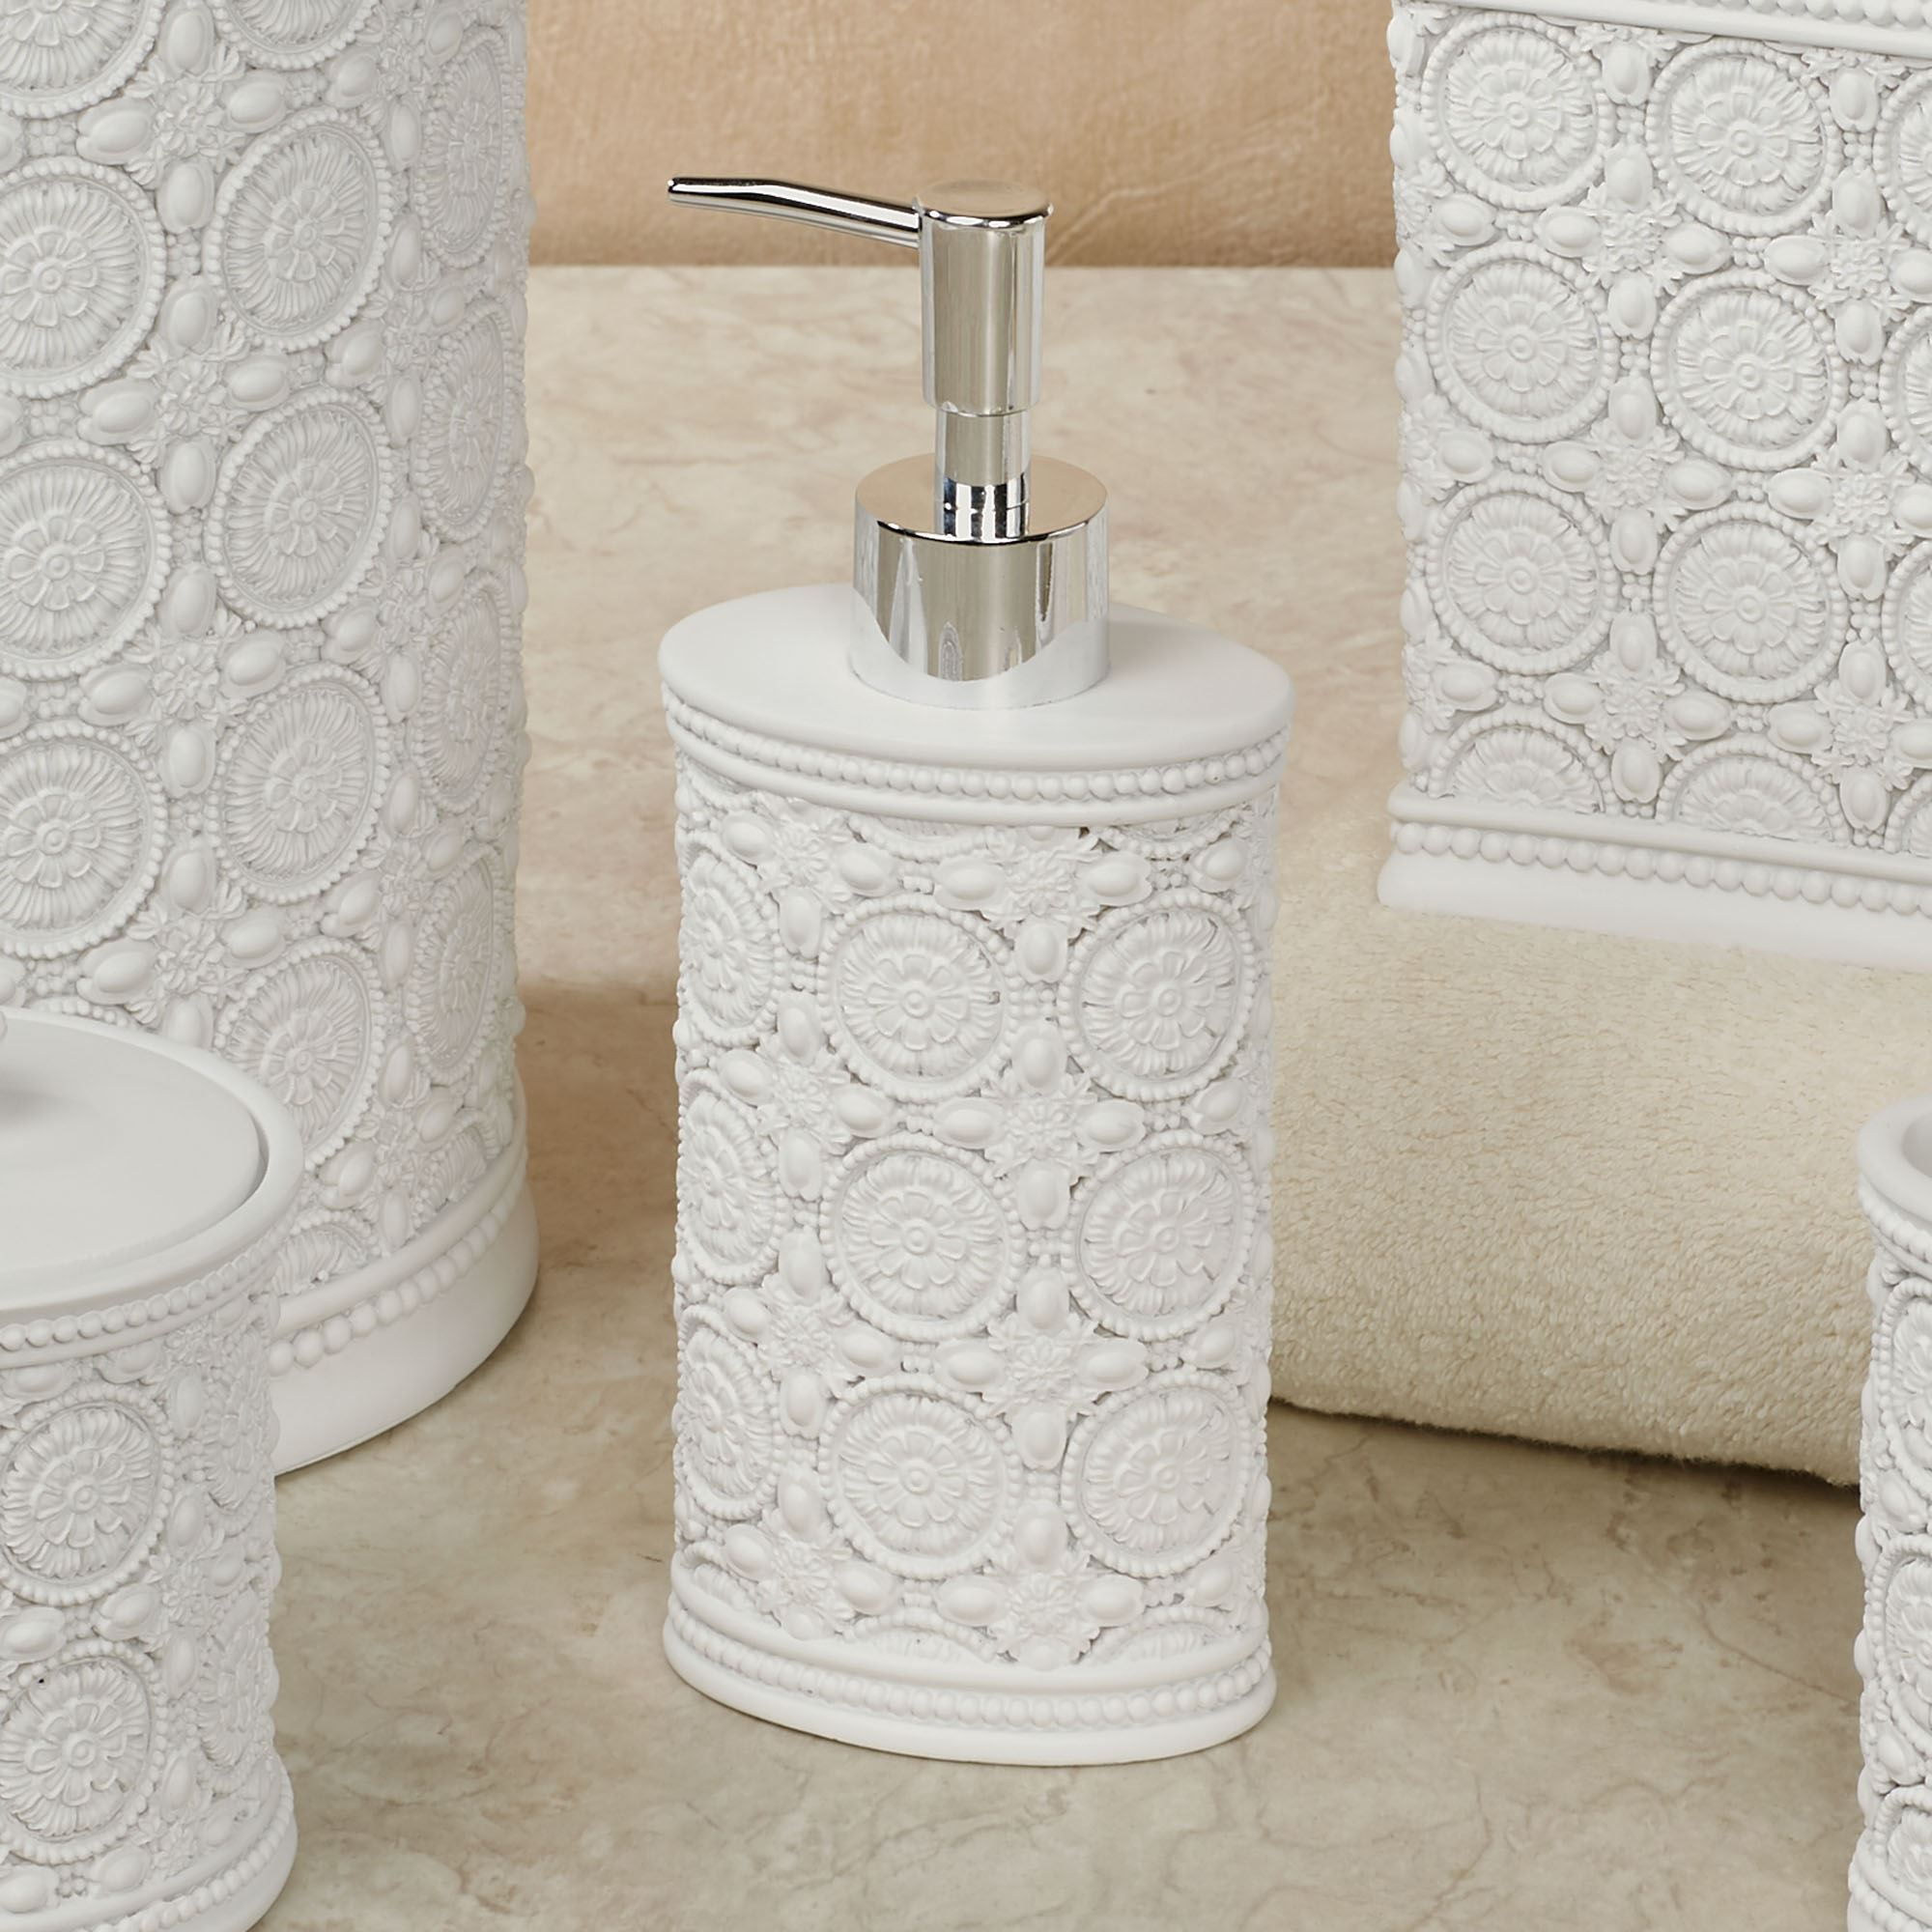 Knightsbridge Embossed Off White Bath Accessories by Avanti